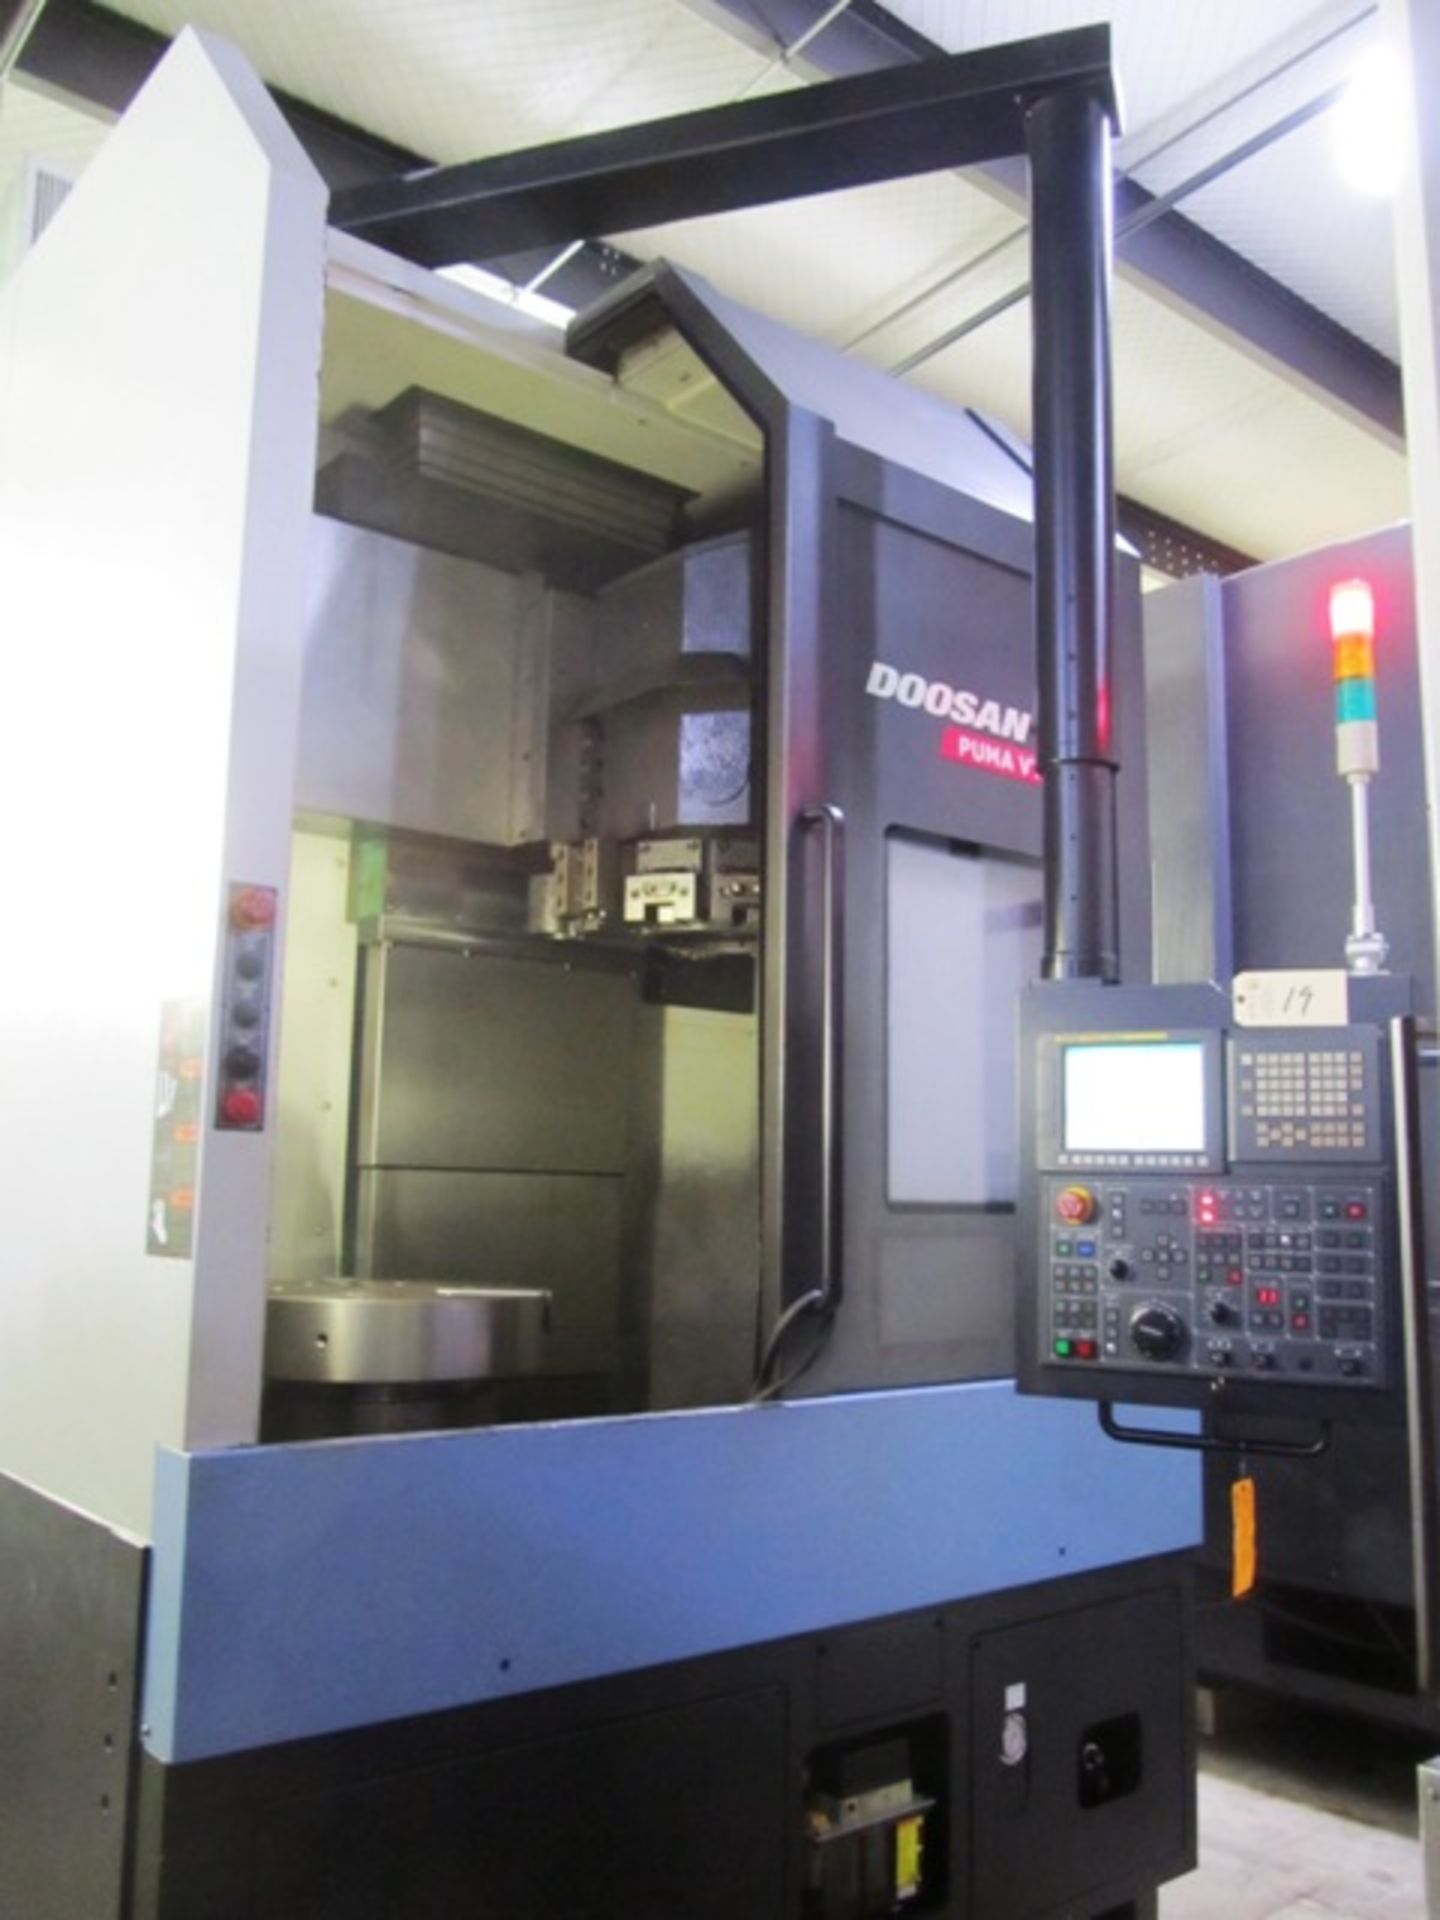 Lot 19 - Doosan VT900 CNC Vertical Turning Center